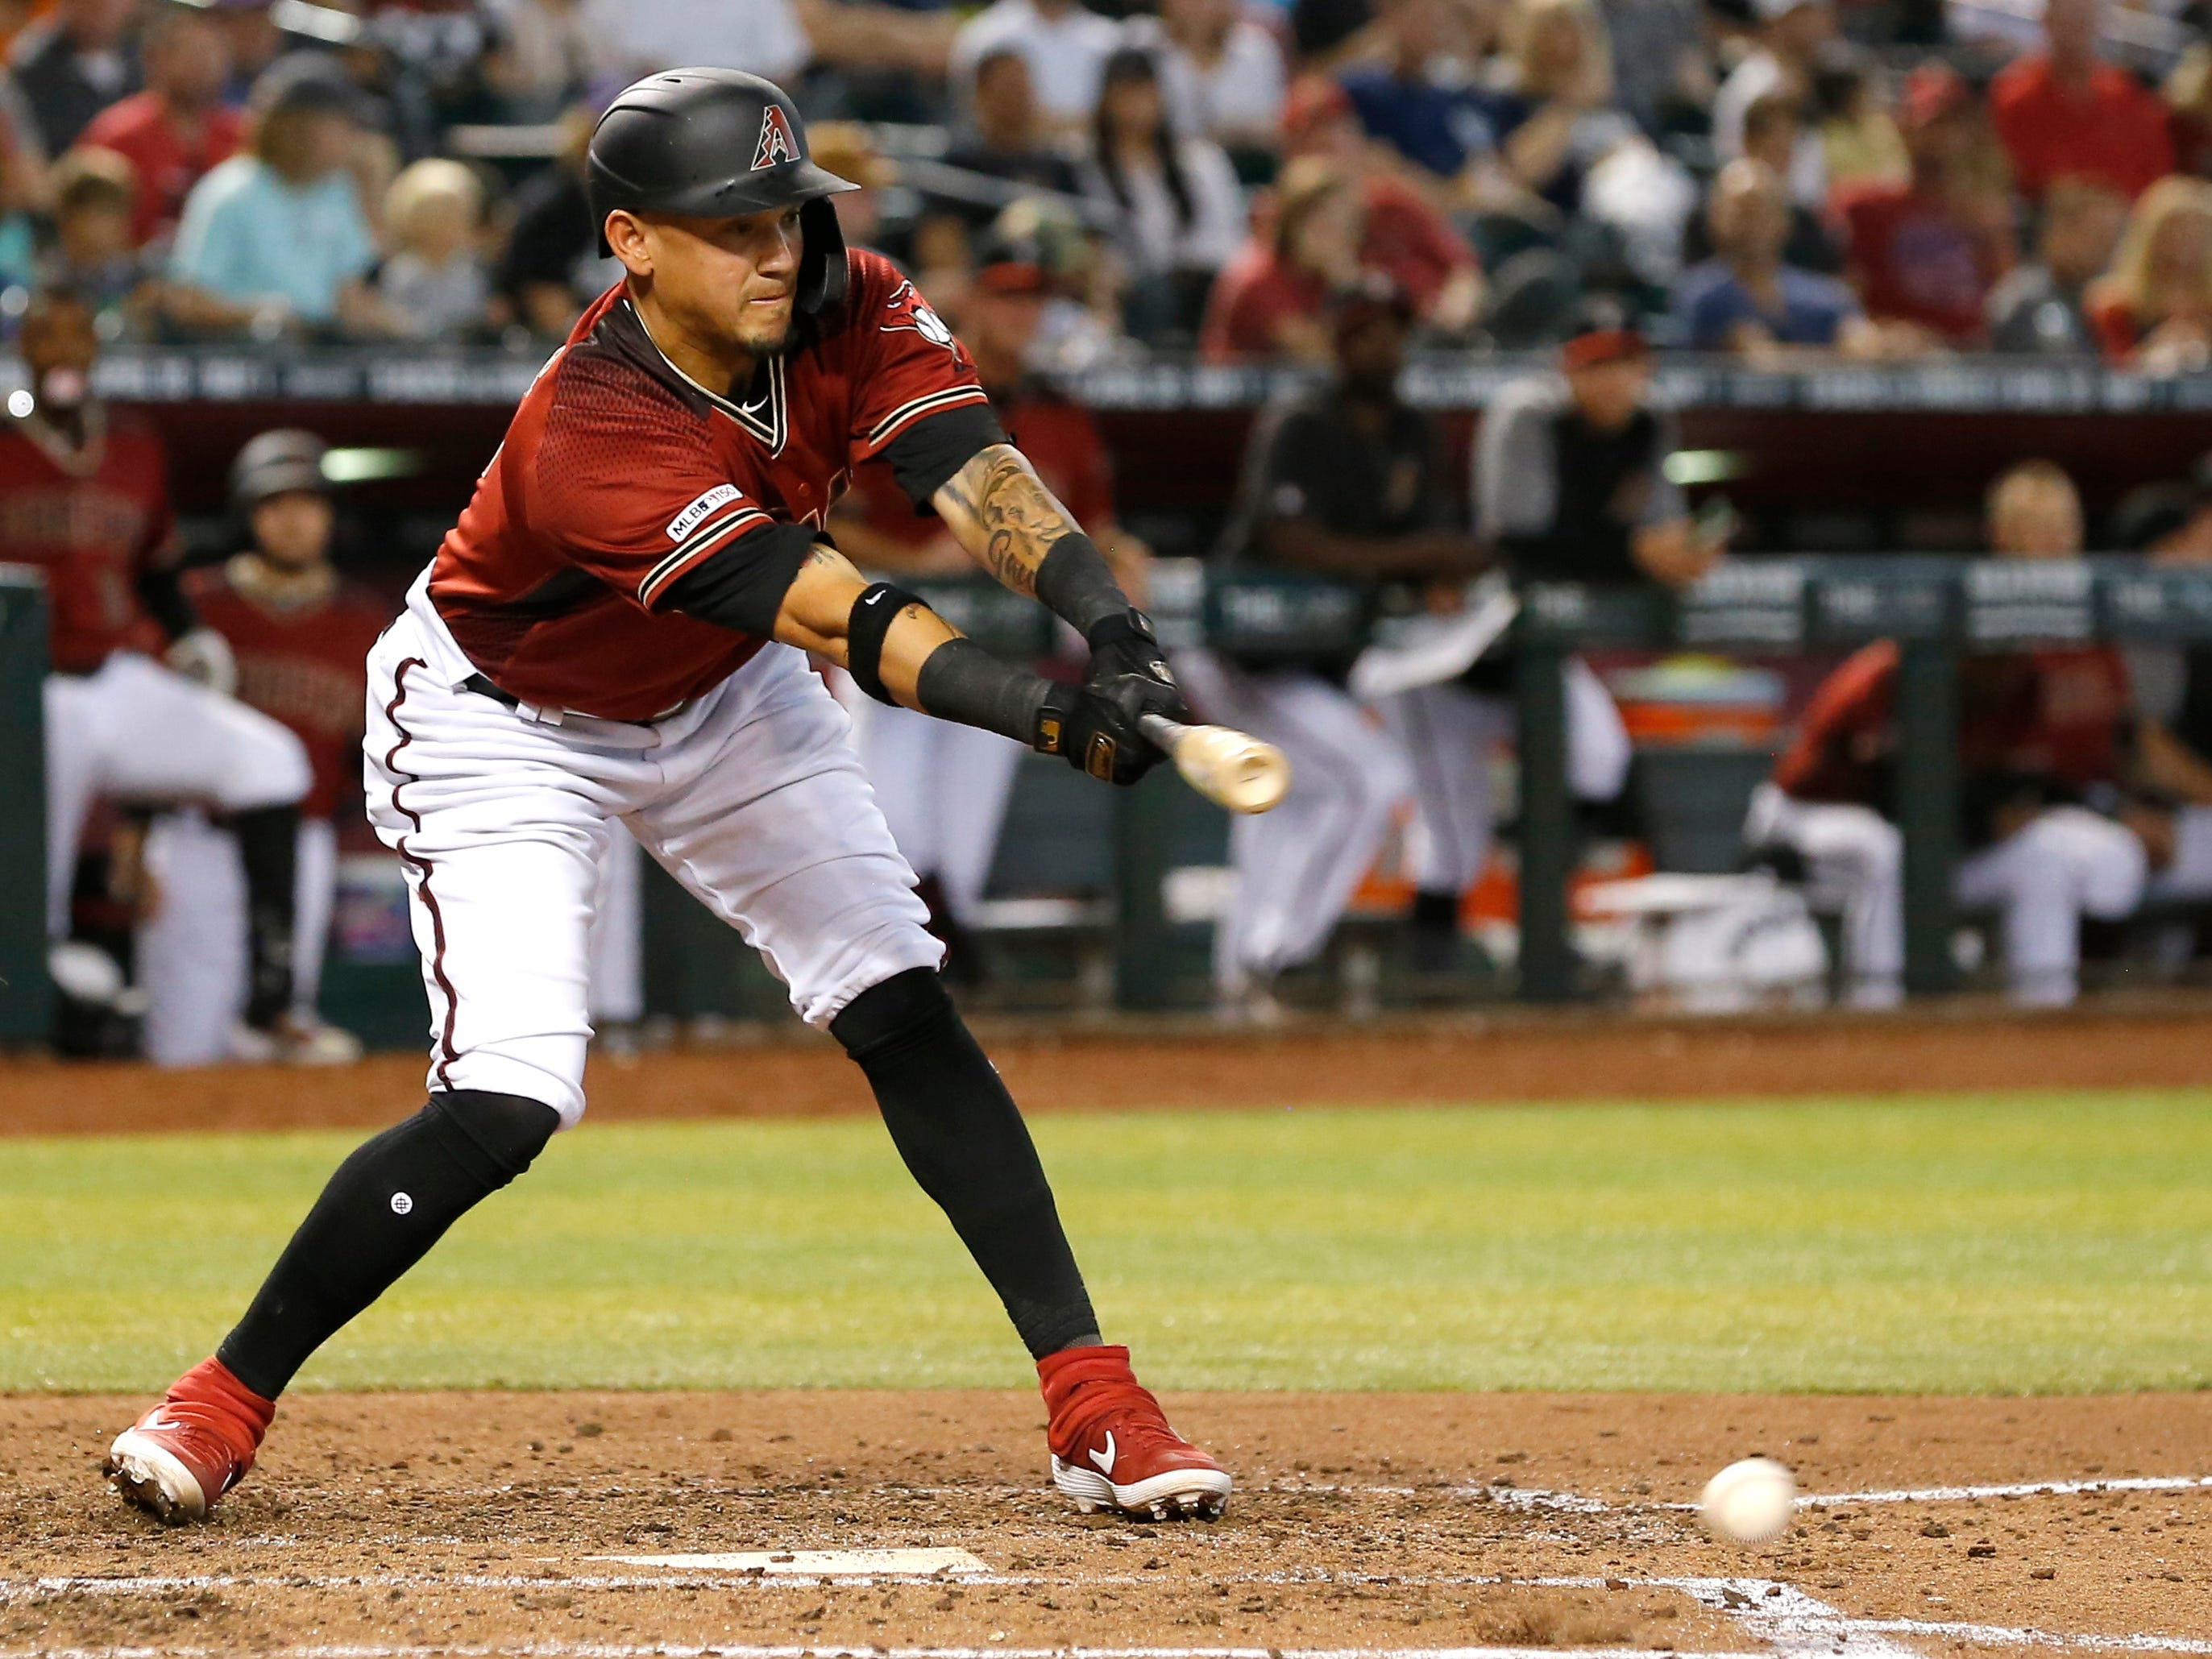 Arizona Diamondbacks second baseman Ildemaro Vargas (15) in the first inning during a baseball game against the San Diego Padres, Sunday, April 14, 2019, in Phoenix. (AP Photo/Rick Scuteri)